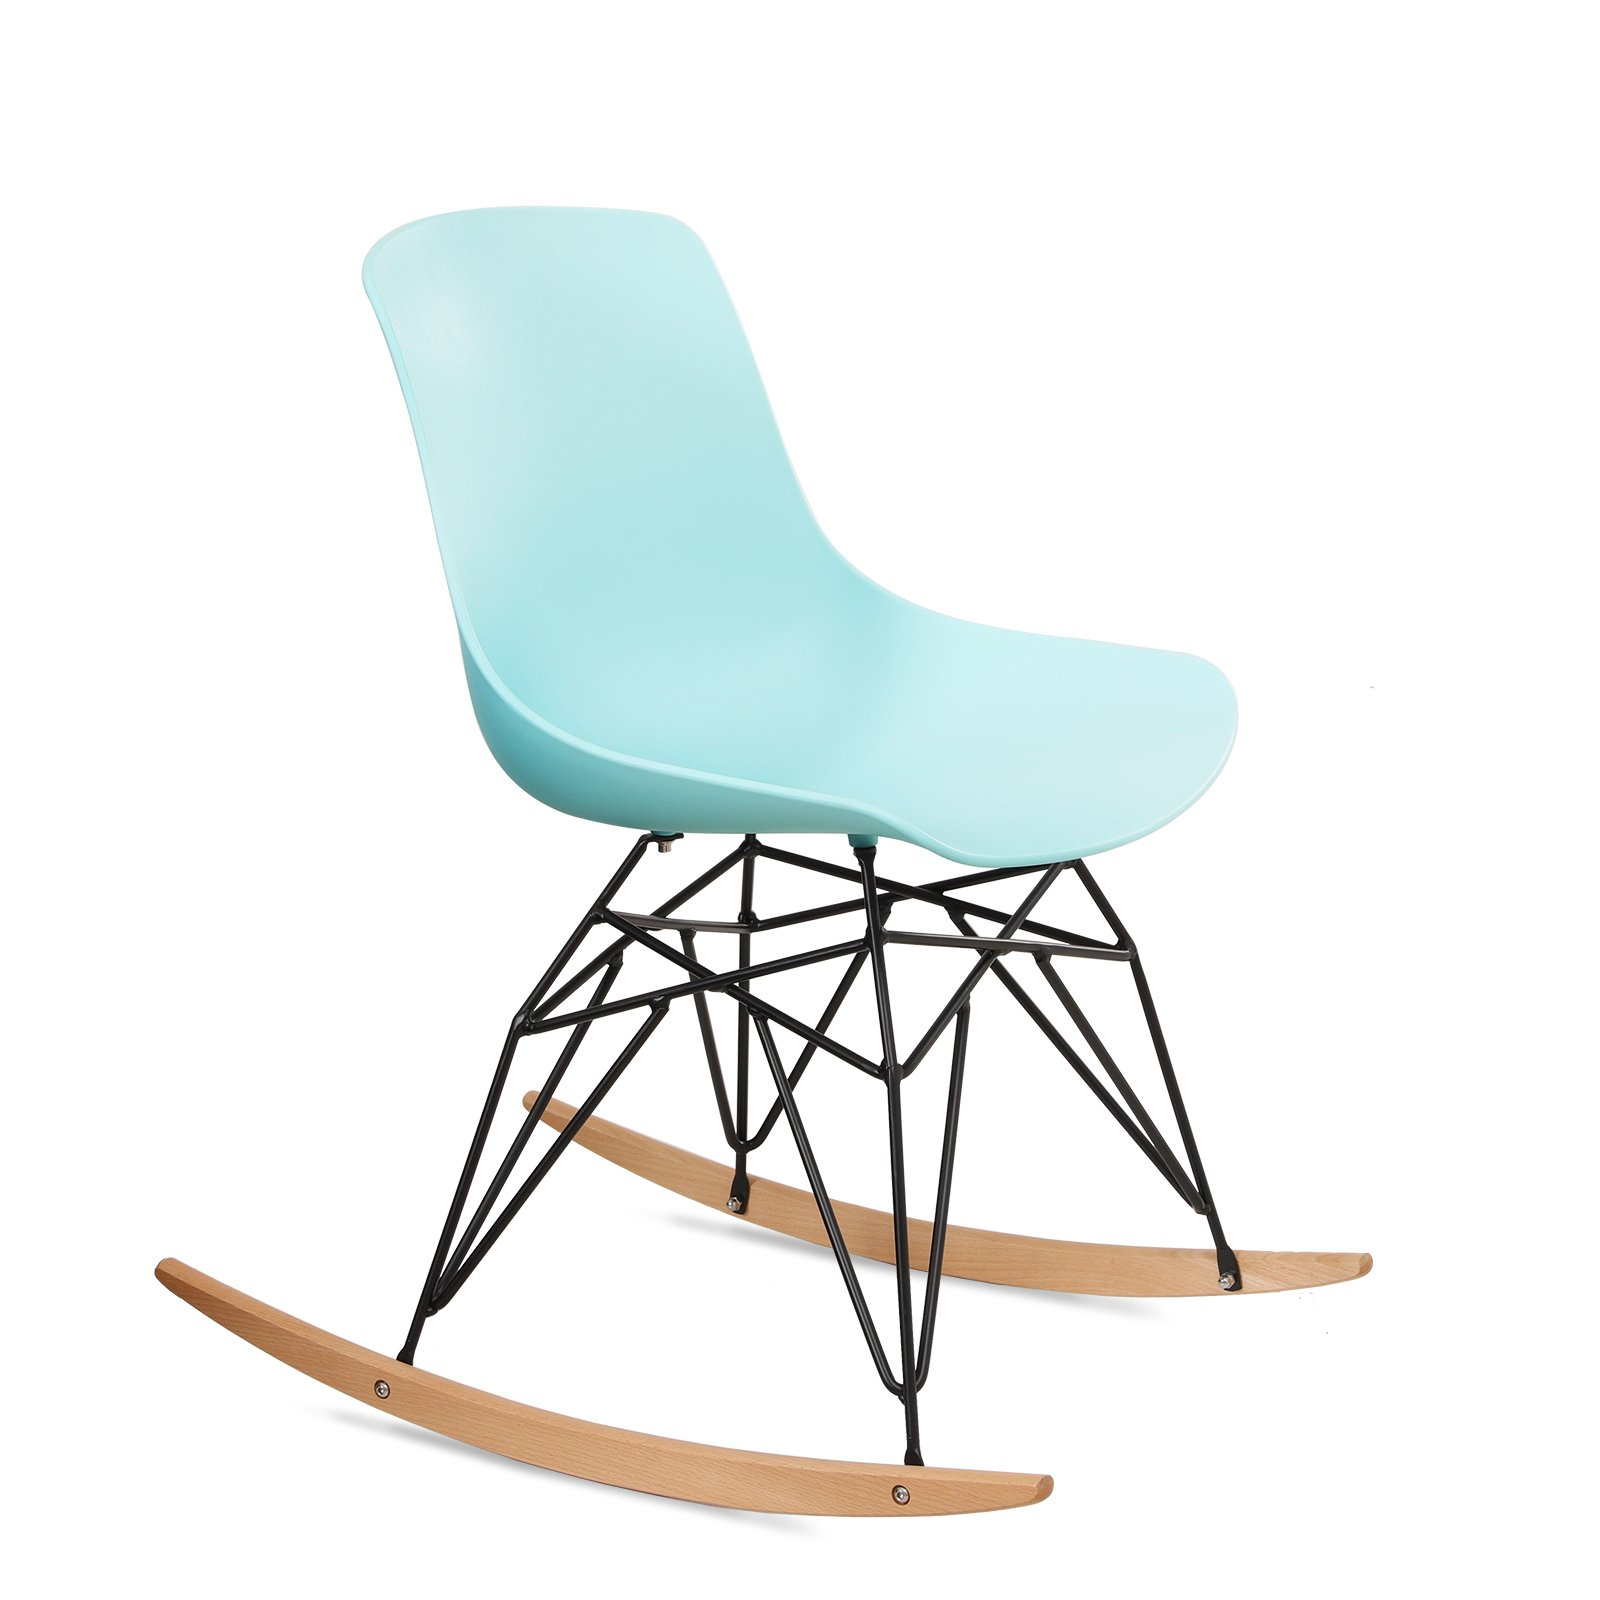 SONGMICS Modern Rocking Chair, Low Back Leisure Lounge Chair, with Metal Legs, Solid Wood Base, Load Capacity 265 lbs, for Balcony, Living Room, Bedroom, Porch, Patio, Garden ULDC61BU